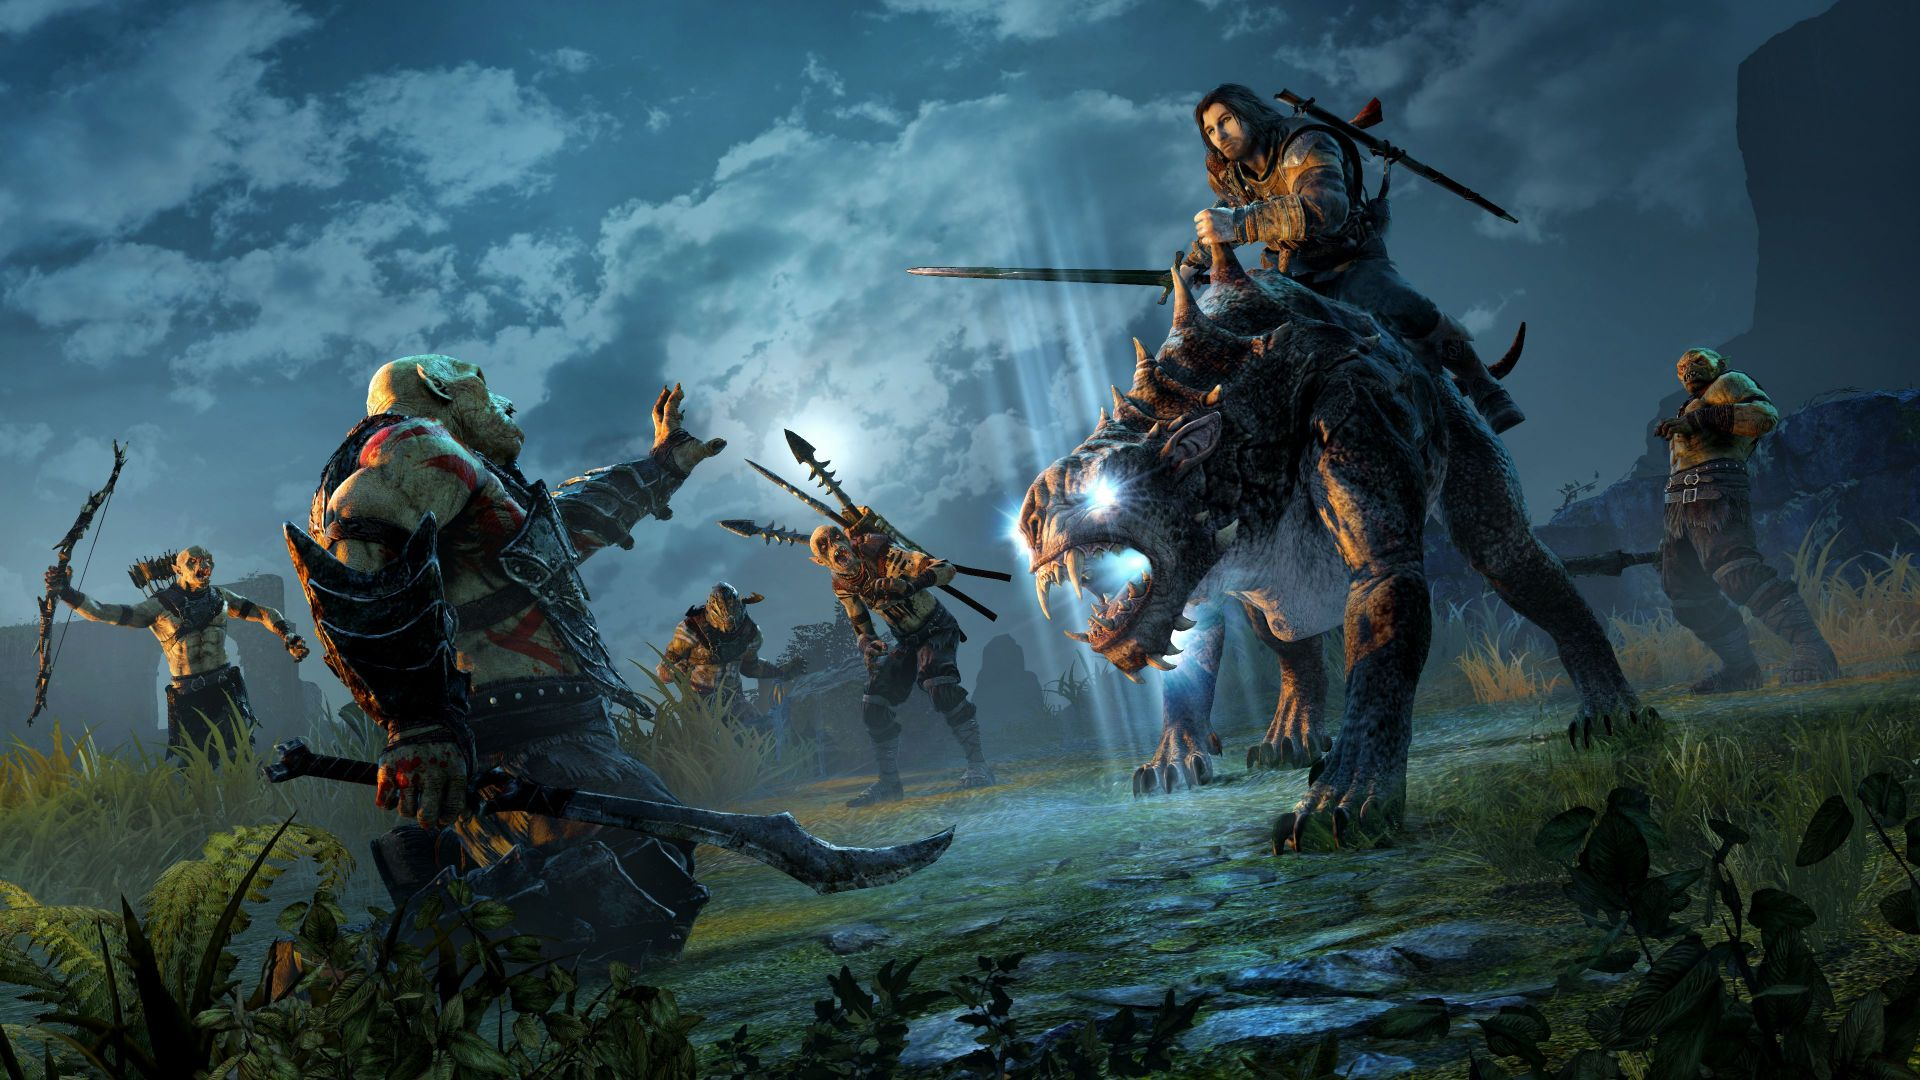 Middle-earth: Shadow of Mordor, video game, 2017